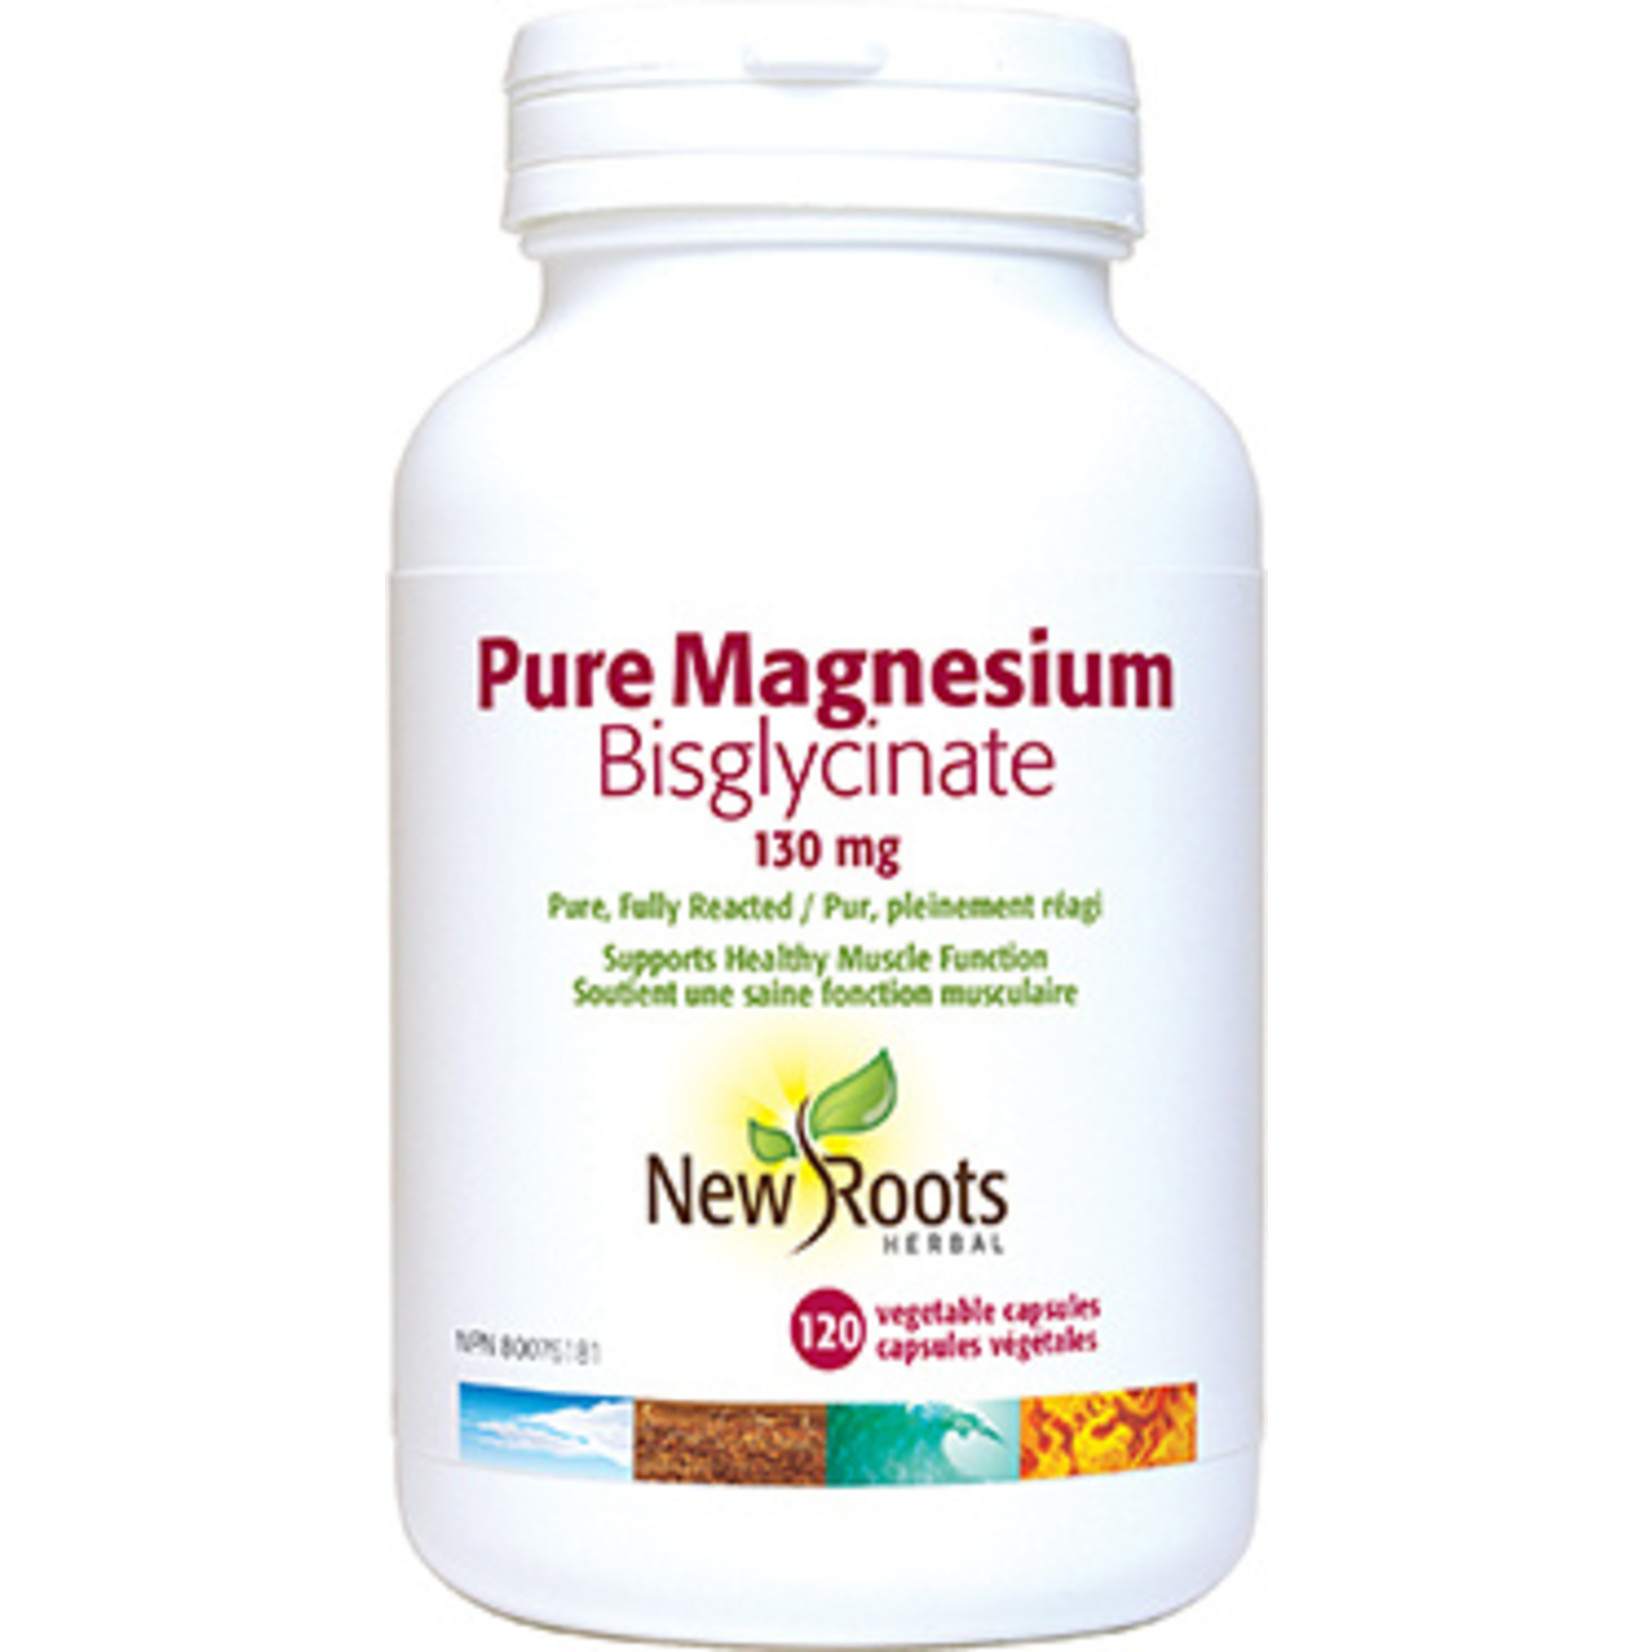 New Roots New Roots Pure Magnesium Bisglycinate 130mg 60 caps